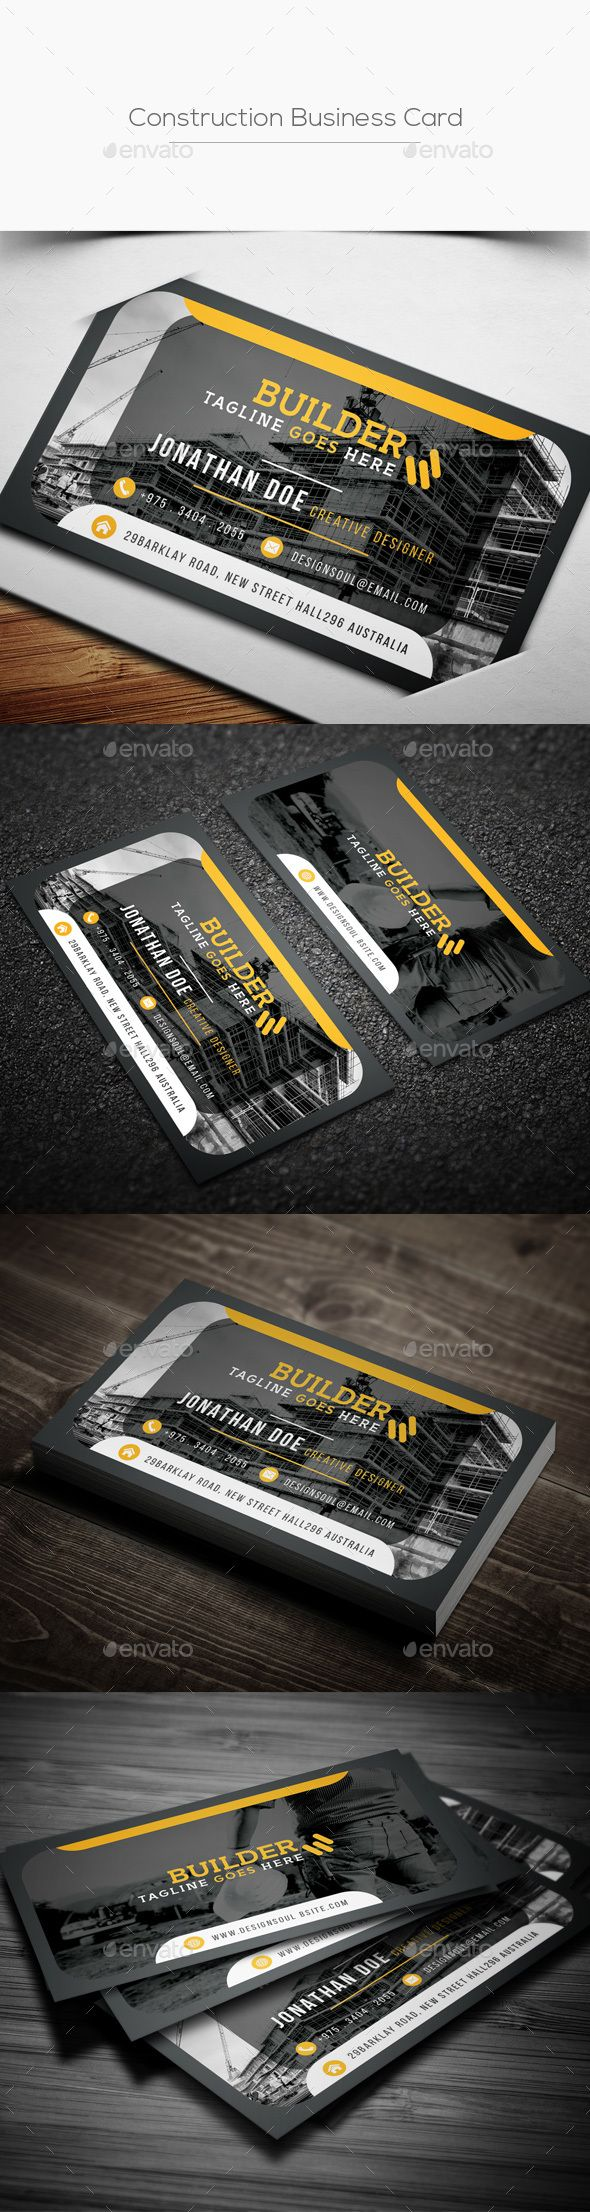 Construction Business Card - Corporate #Business #Cards Download here:  https://graphicriver.net/item/construction-business-card/20288608?ref=alena994